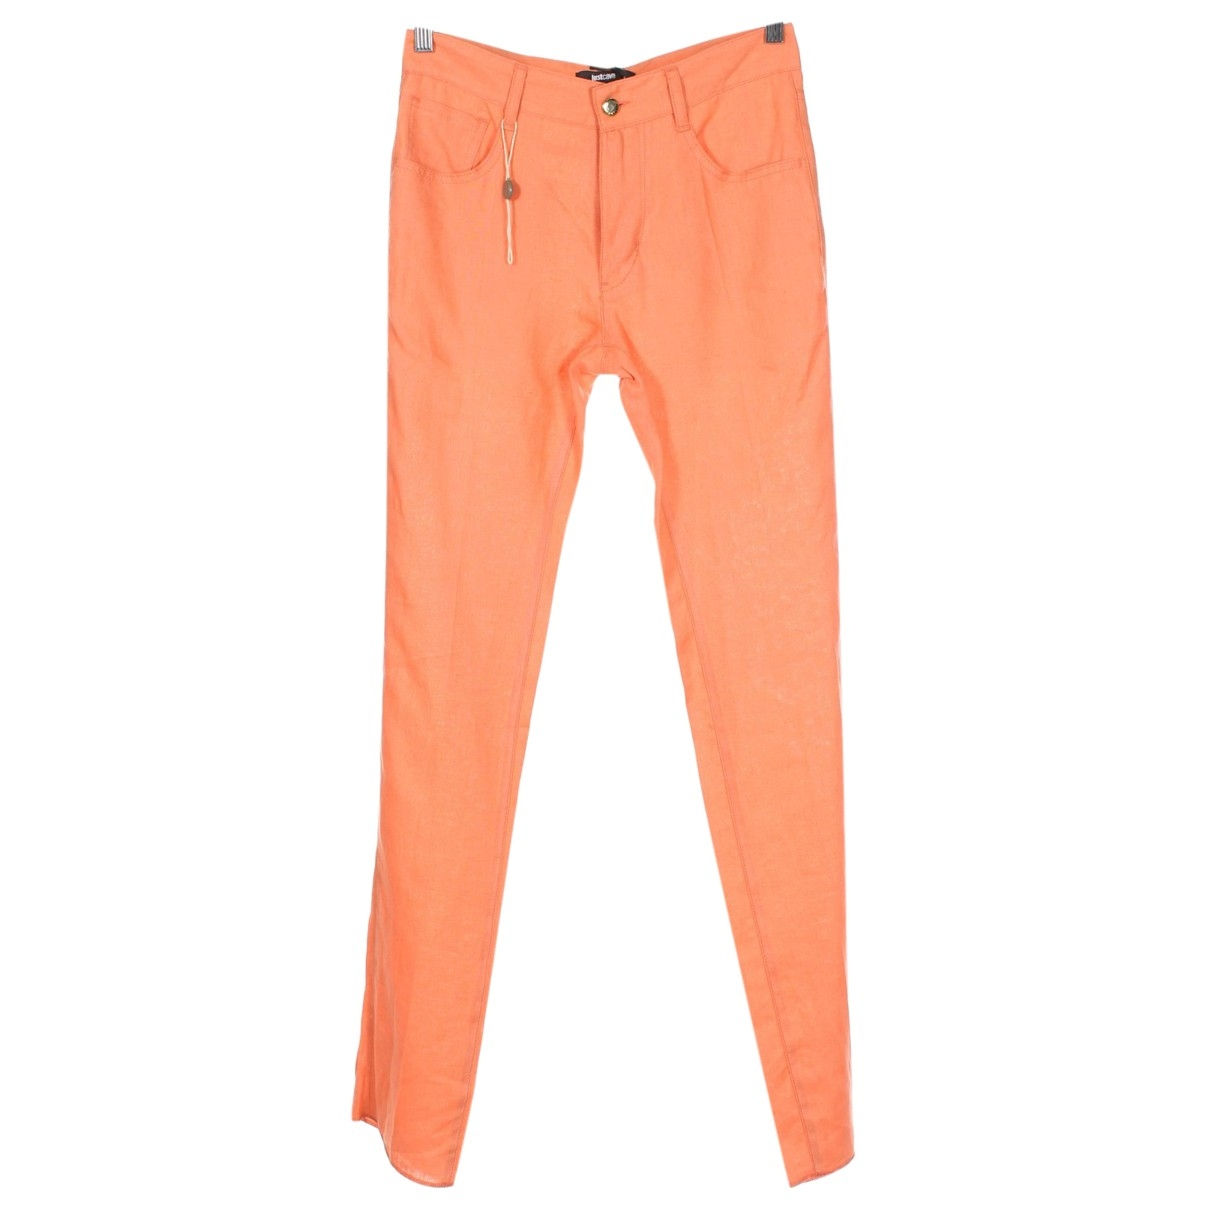 Just Cavalli \N Orange Linen Trousers for Women 38 IT